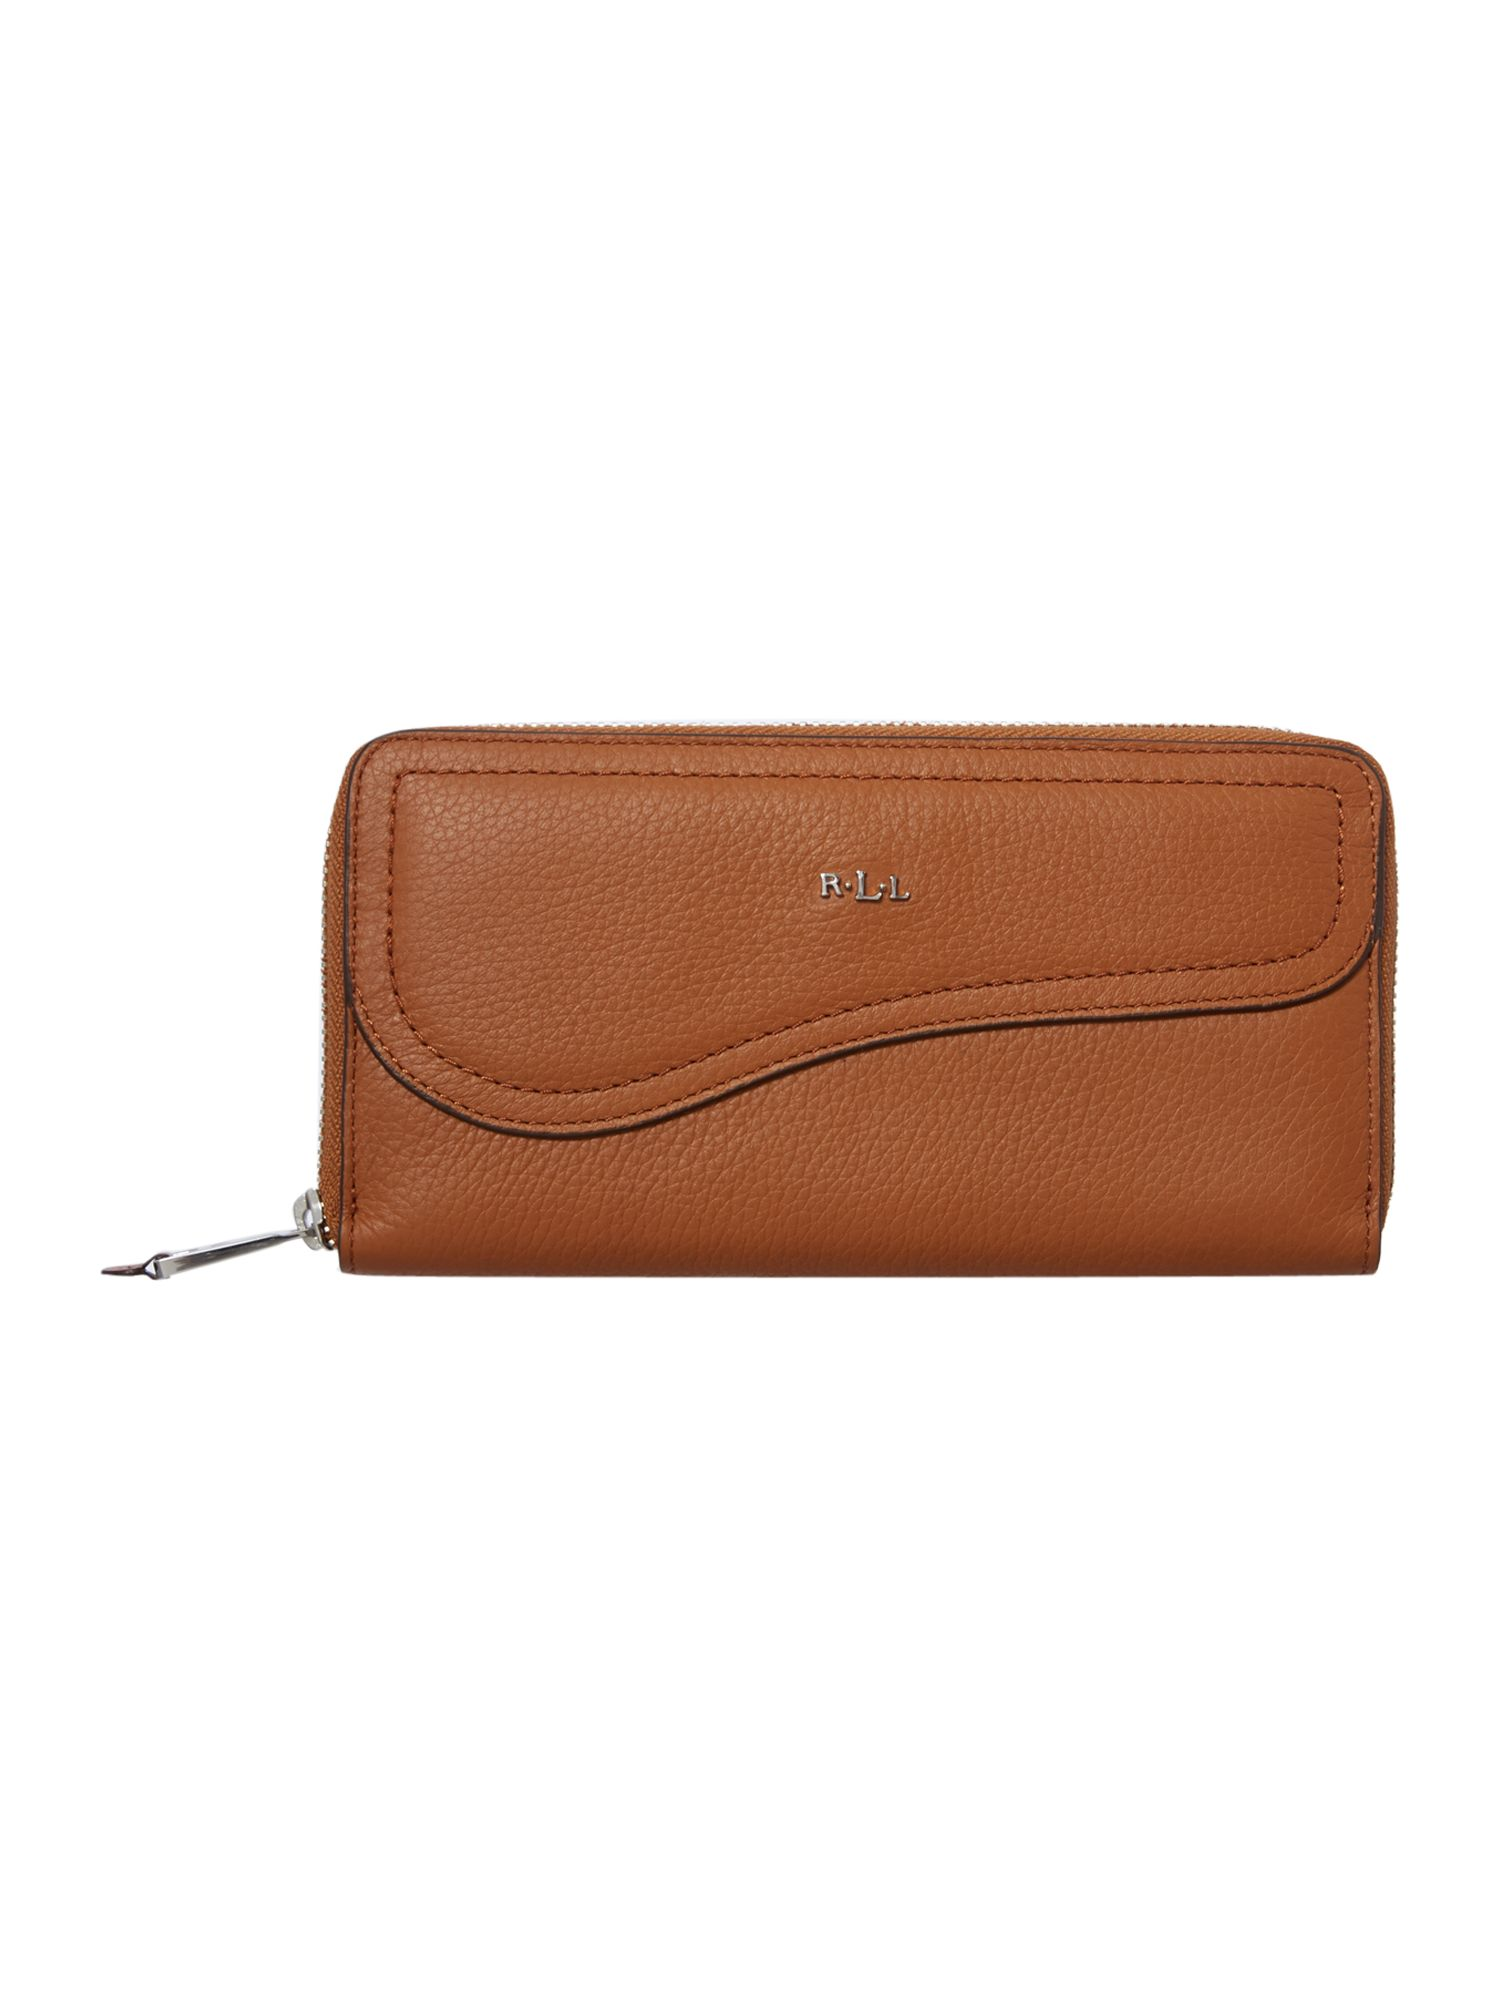 Marlow tan flap over purse